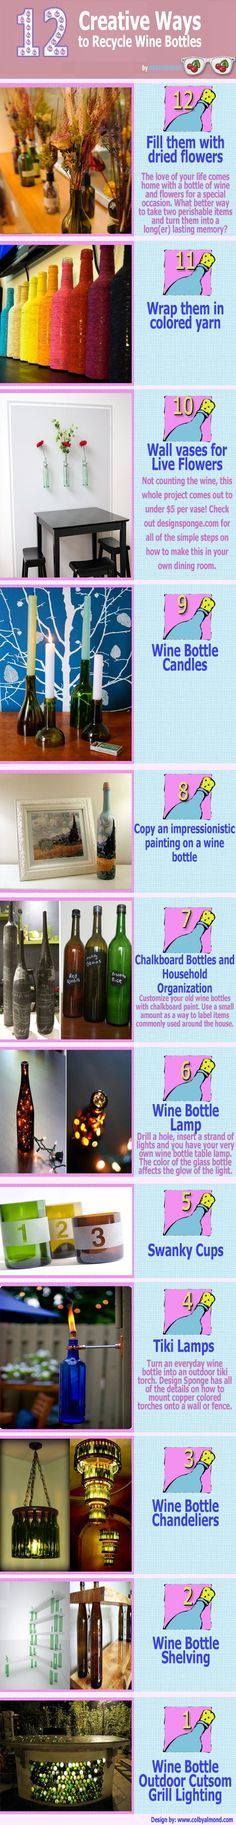 Simple and creative ideas for recycling cereal boxes box for Recycling wine bottles creatively